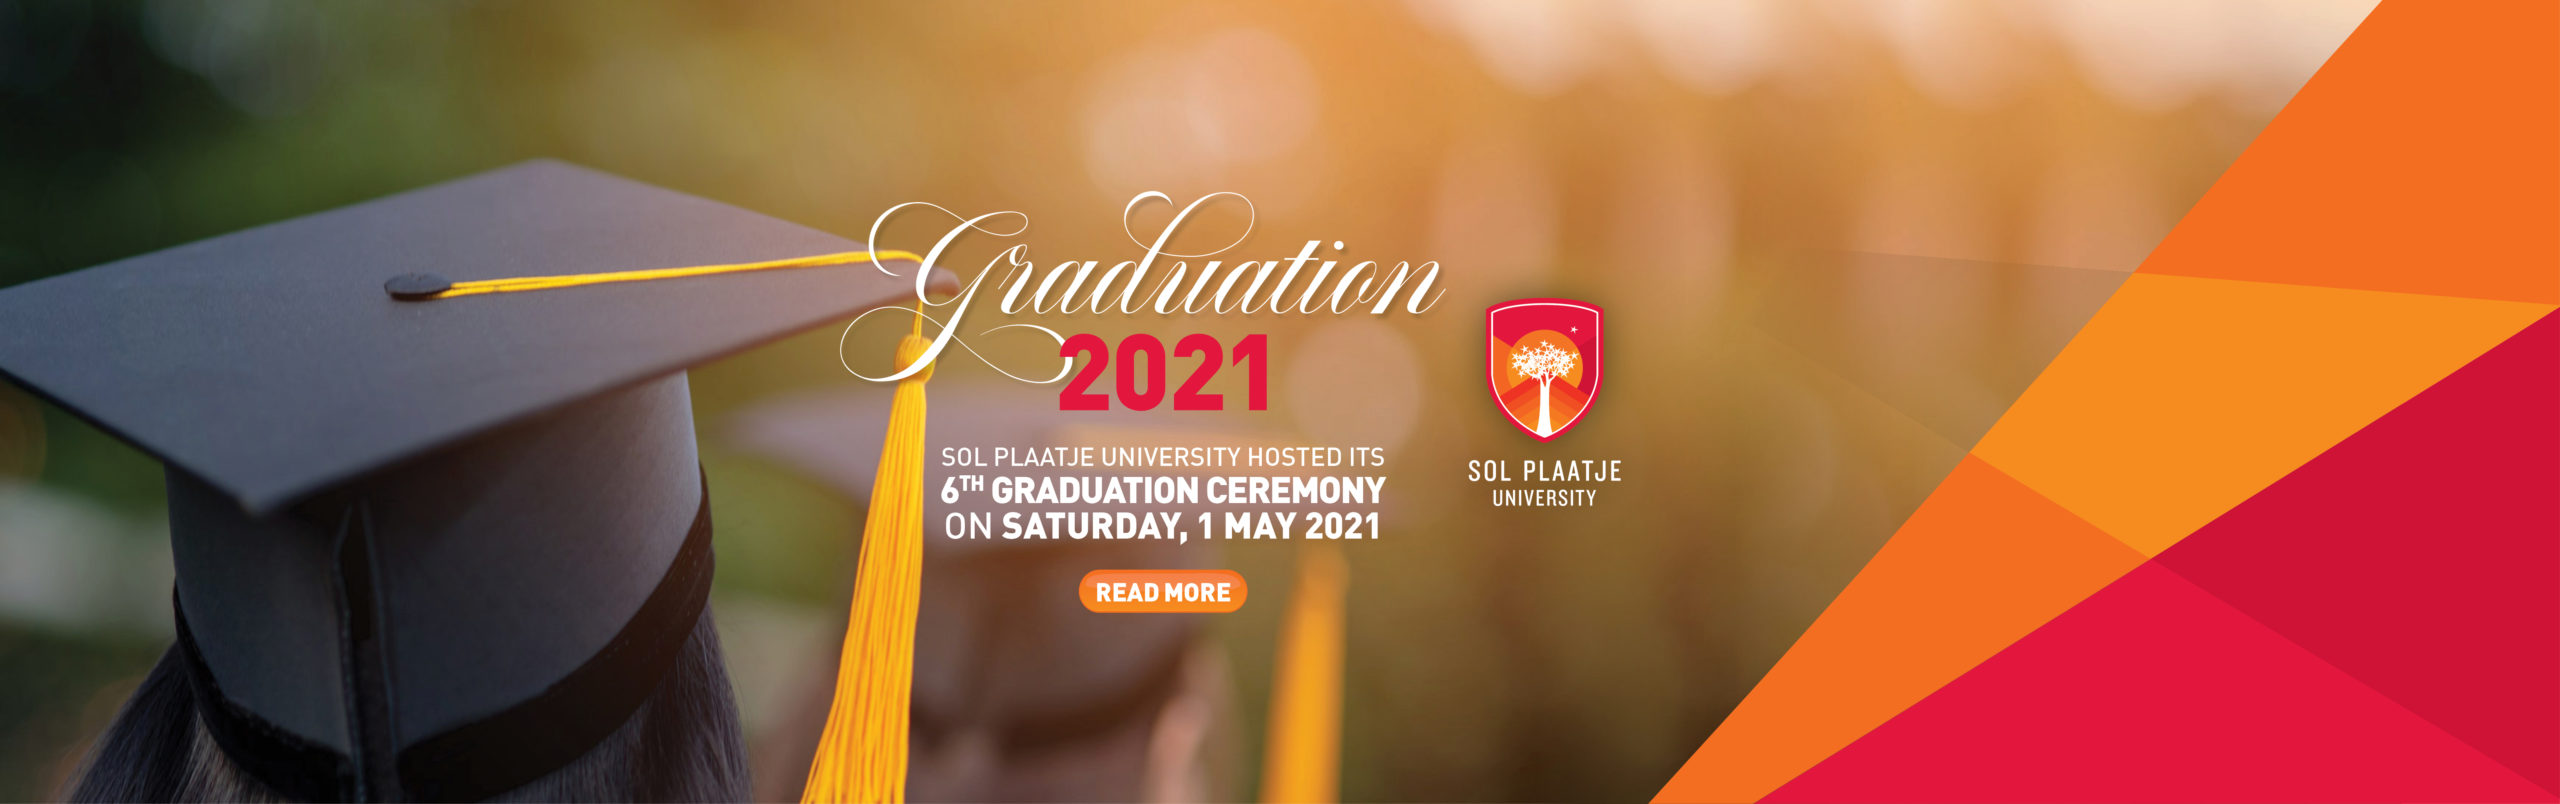 SPU hosted its 6th graduation ceremony